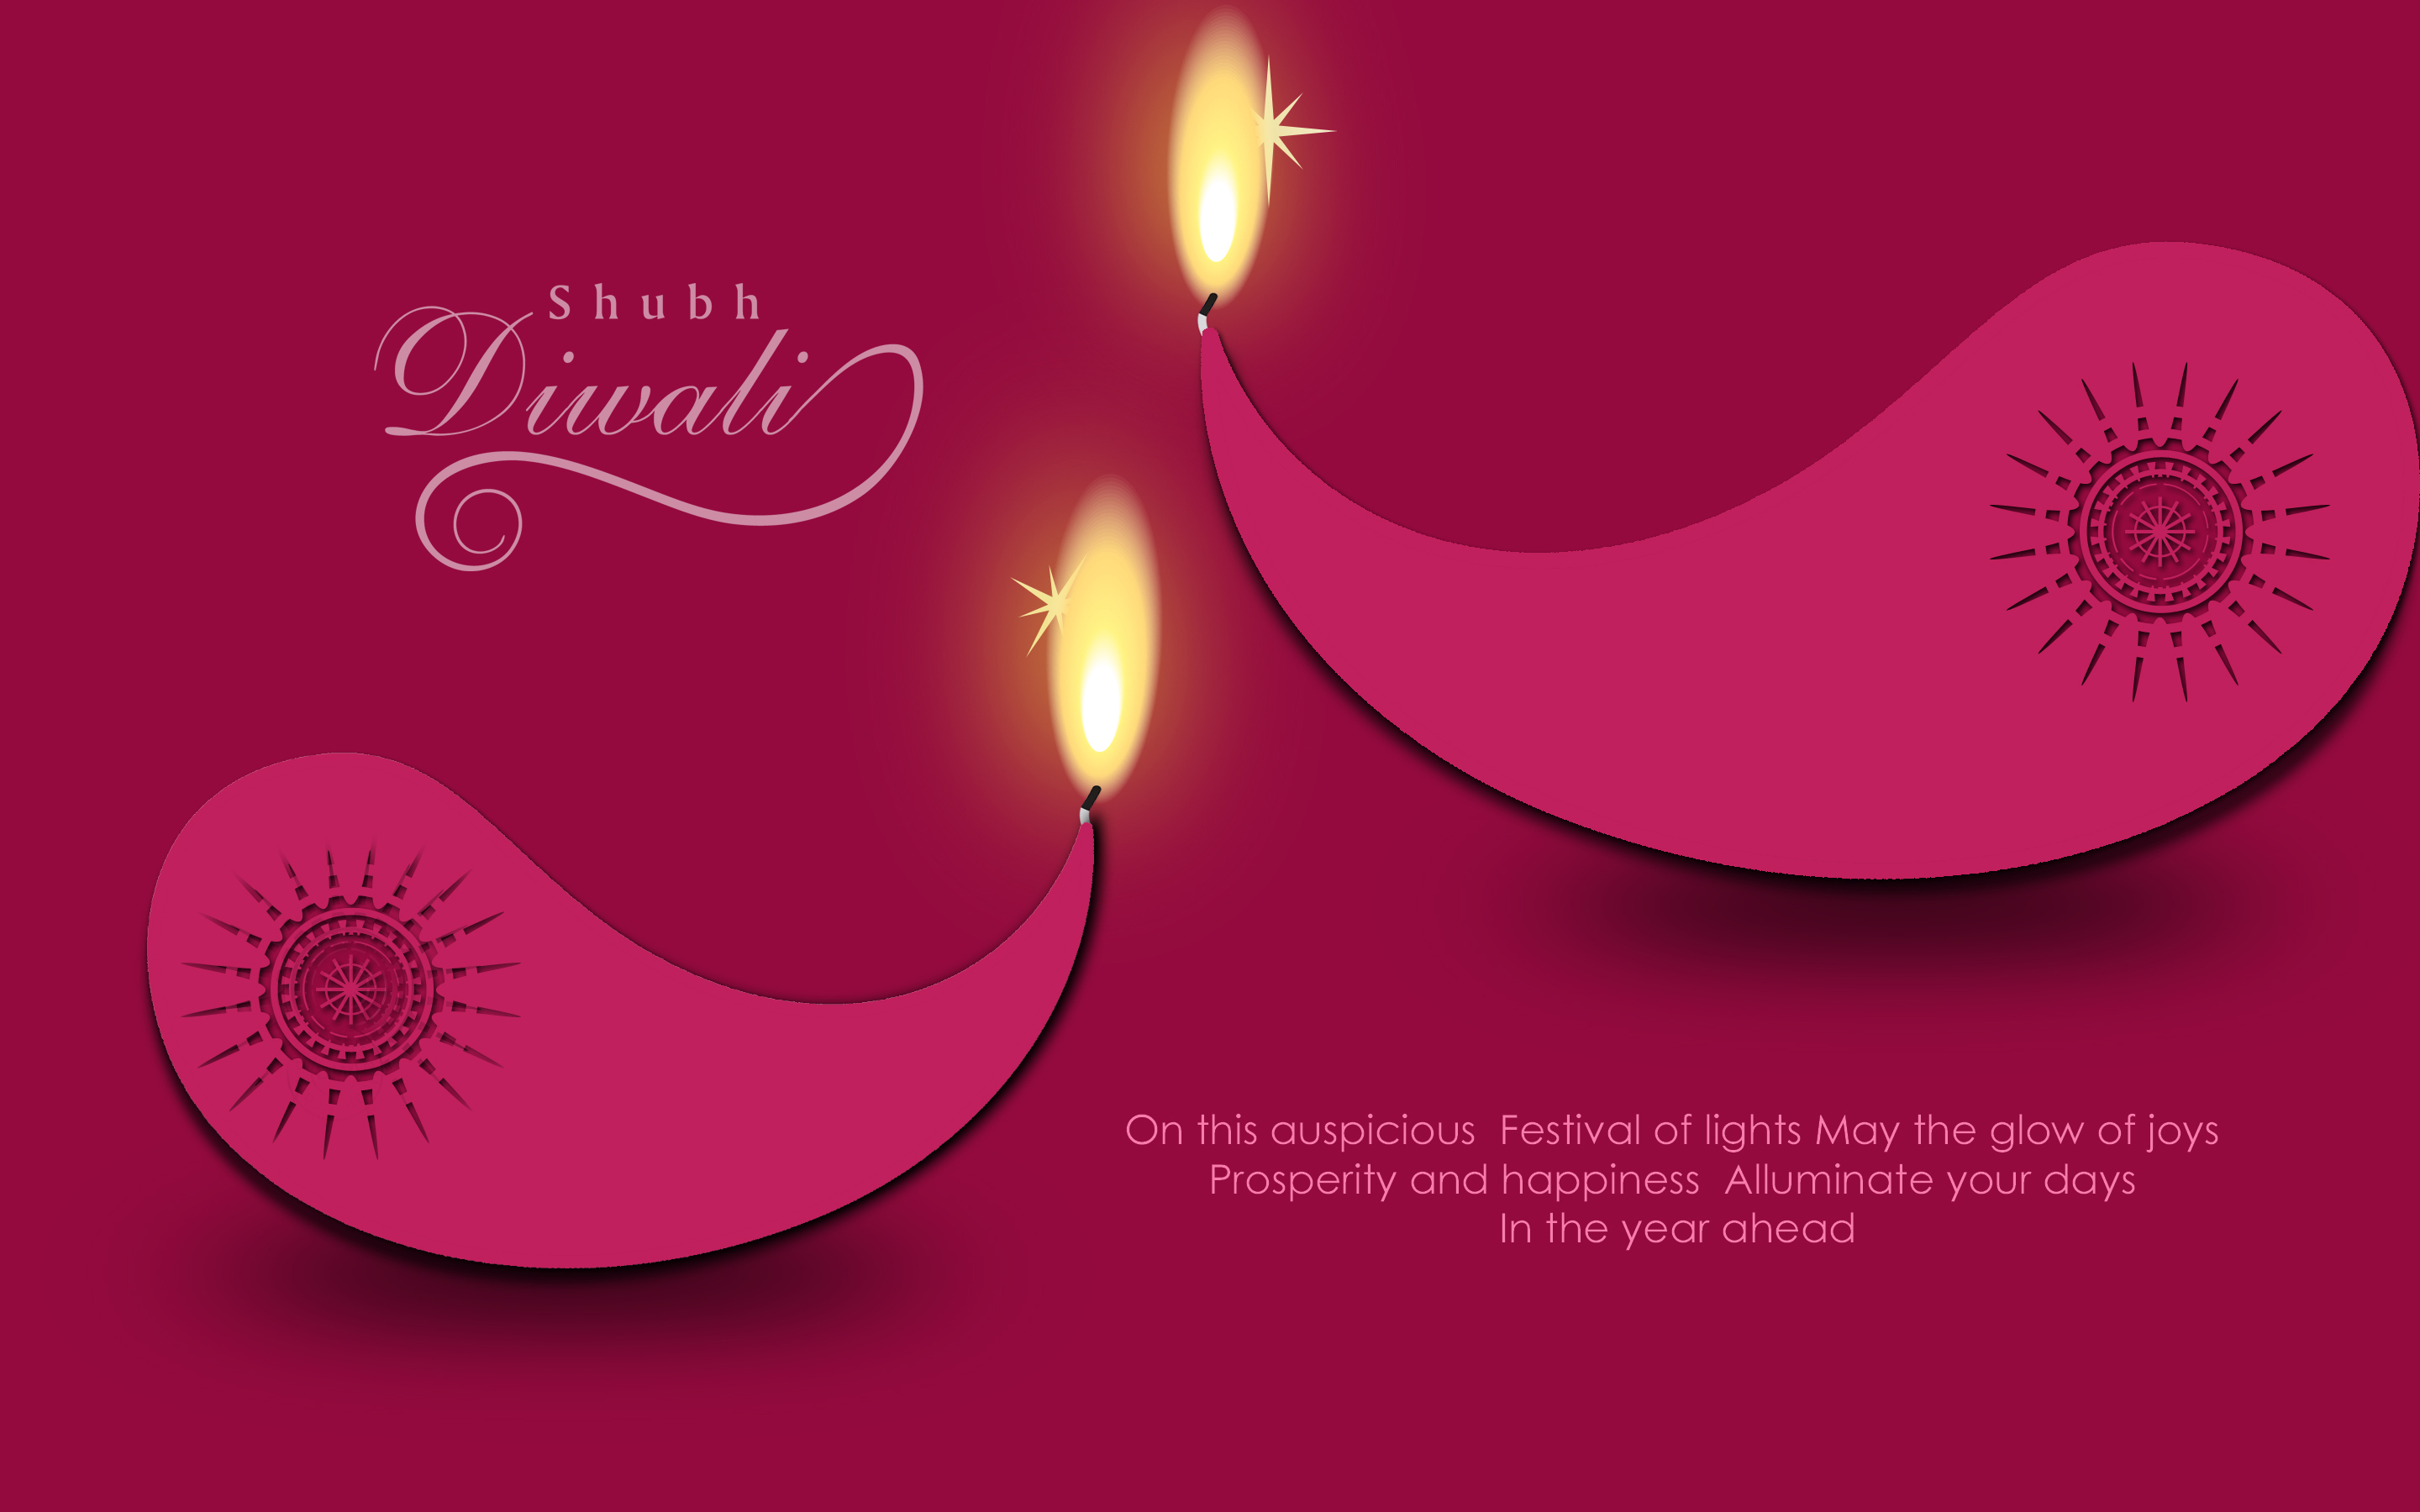 Latest happy diwali 2015 wishes messages images pictures pics photos happy diwali high resolution images m4hsunfo